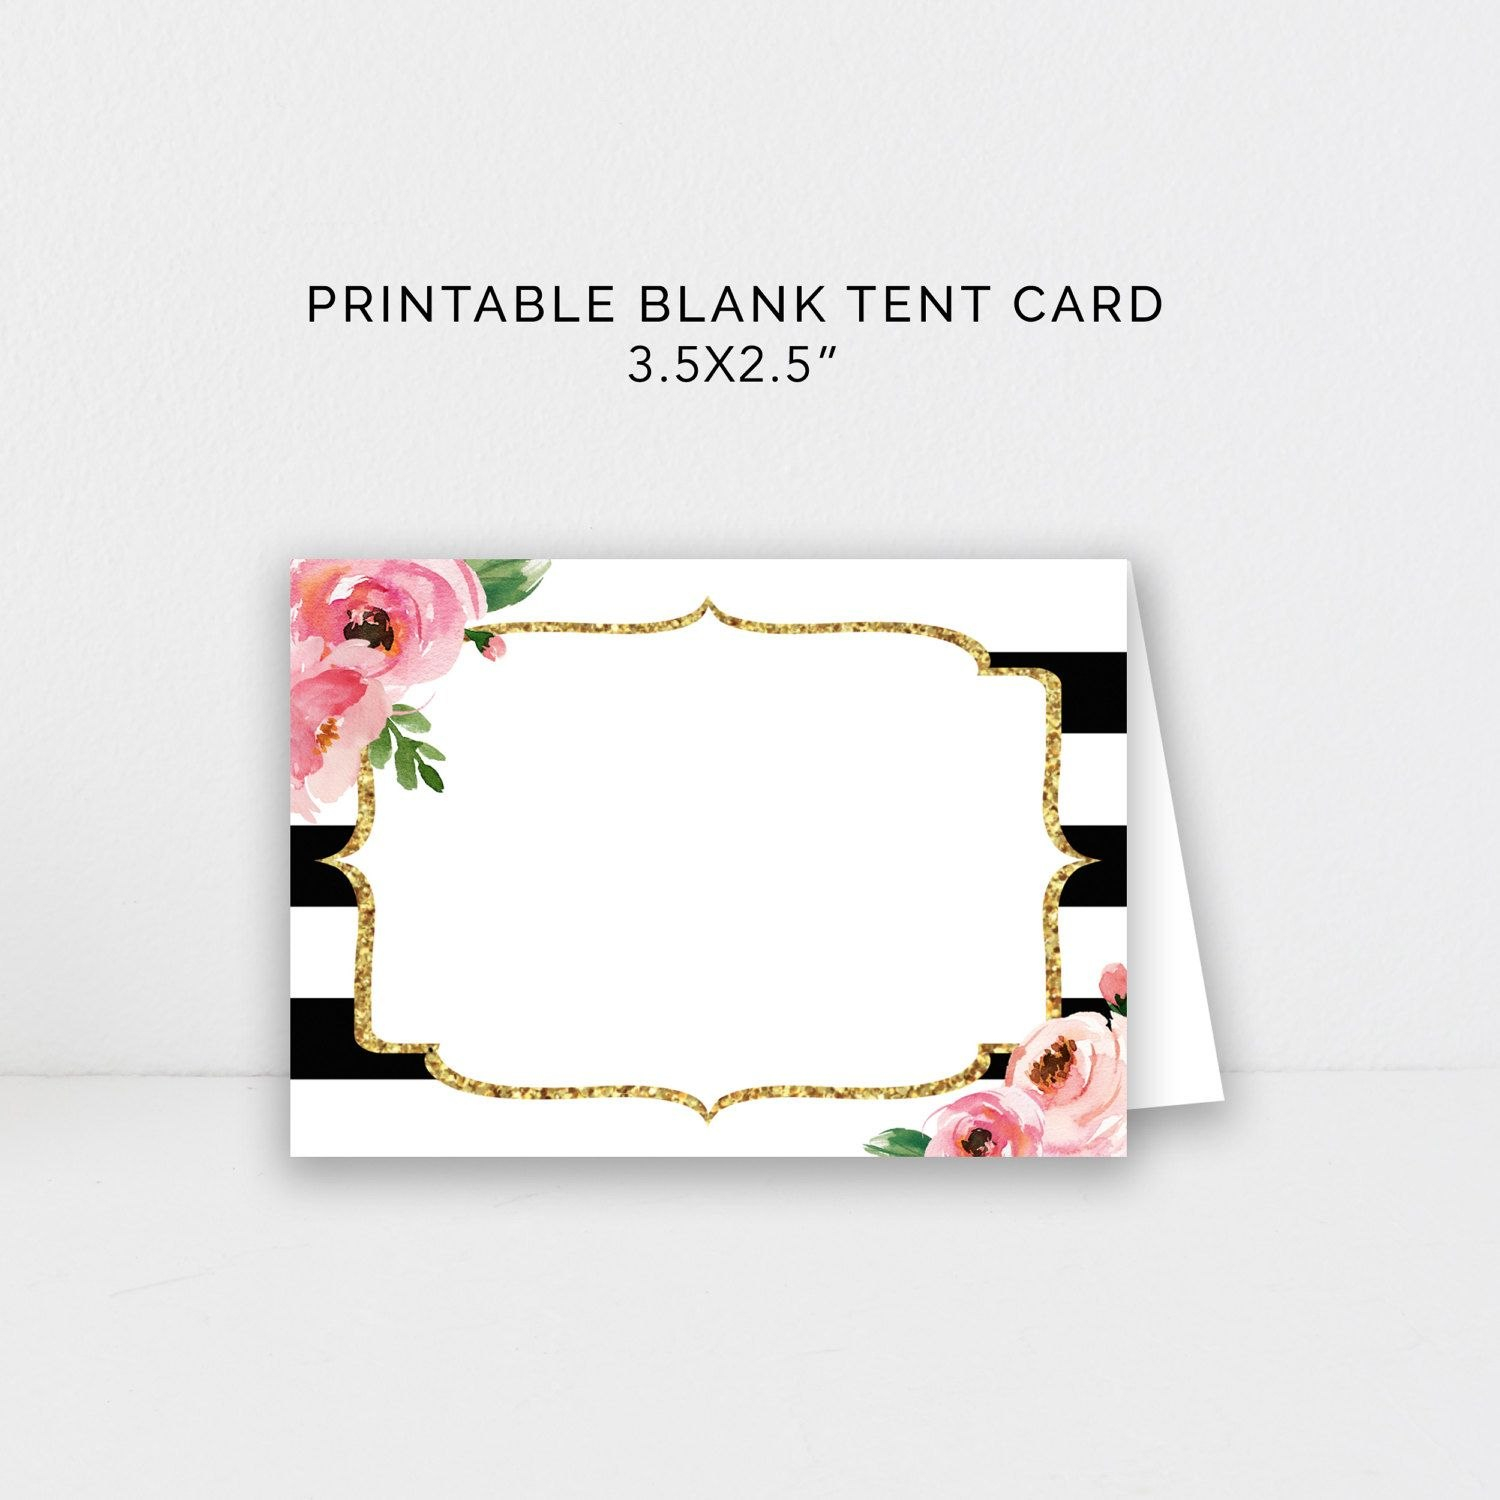 Food Tent Card Editable Template Diy Kate Place Cards Bridal Throughout Blank Tent Card Template